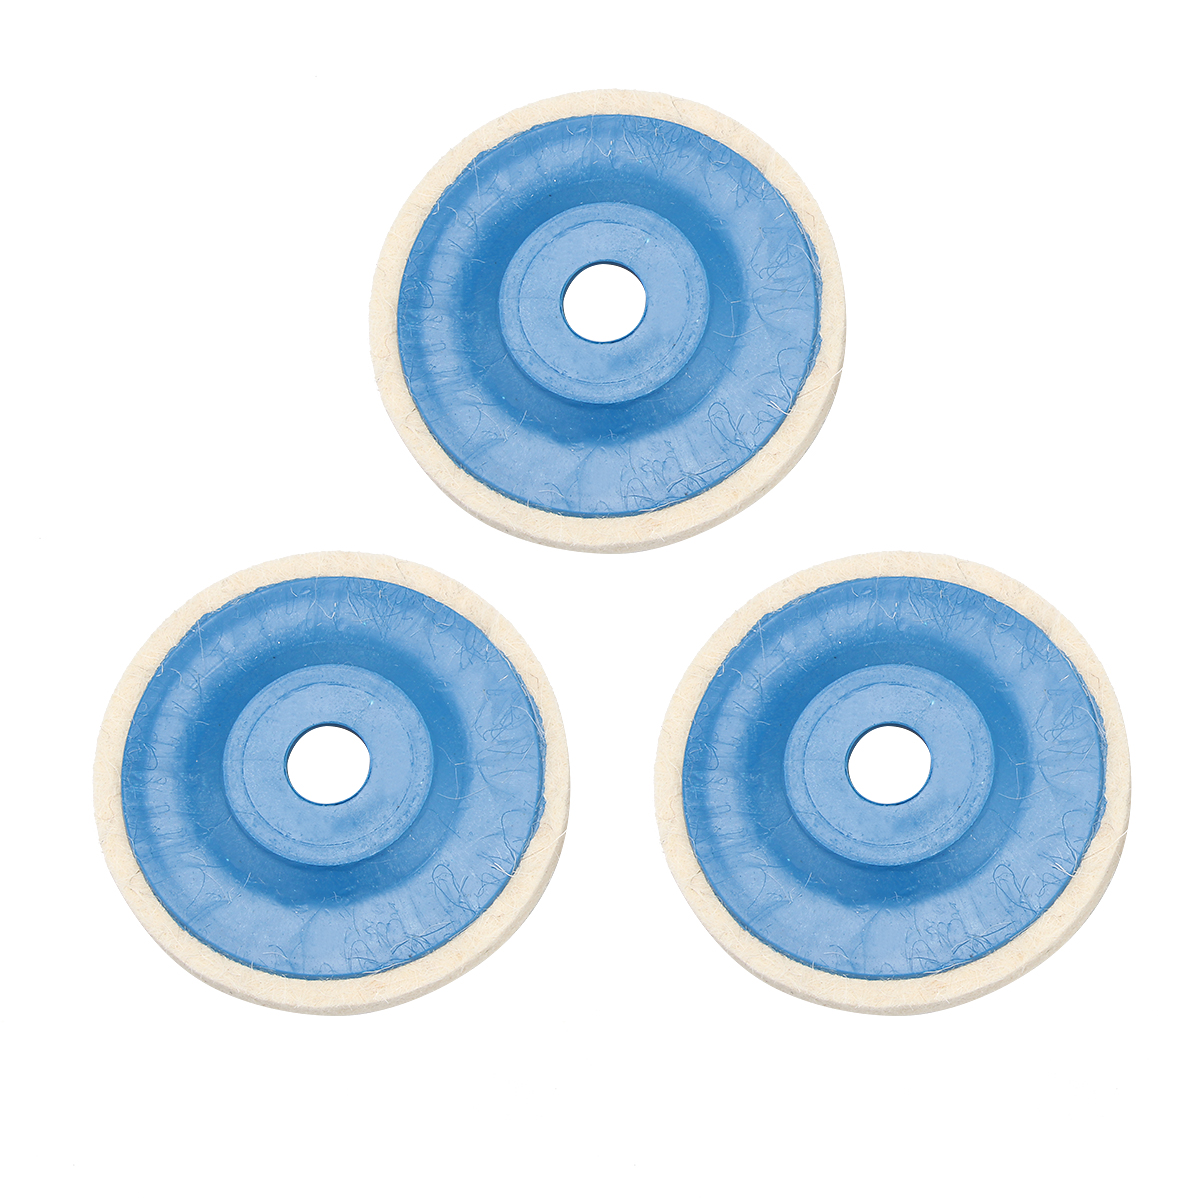 1/3PC 4inch Wool Polishing Wheel Buffing Pads Angle Grinder Wheel Felt Polishing Disc Use For Metal Marble Glass Ceramics